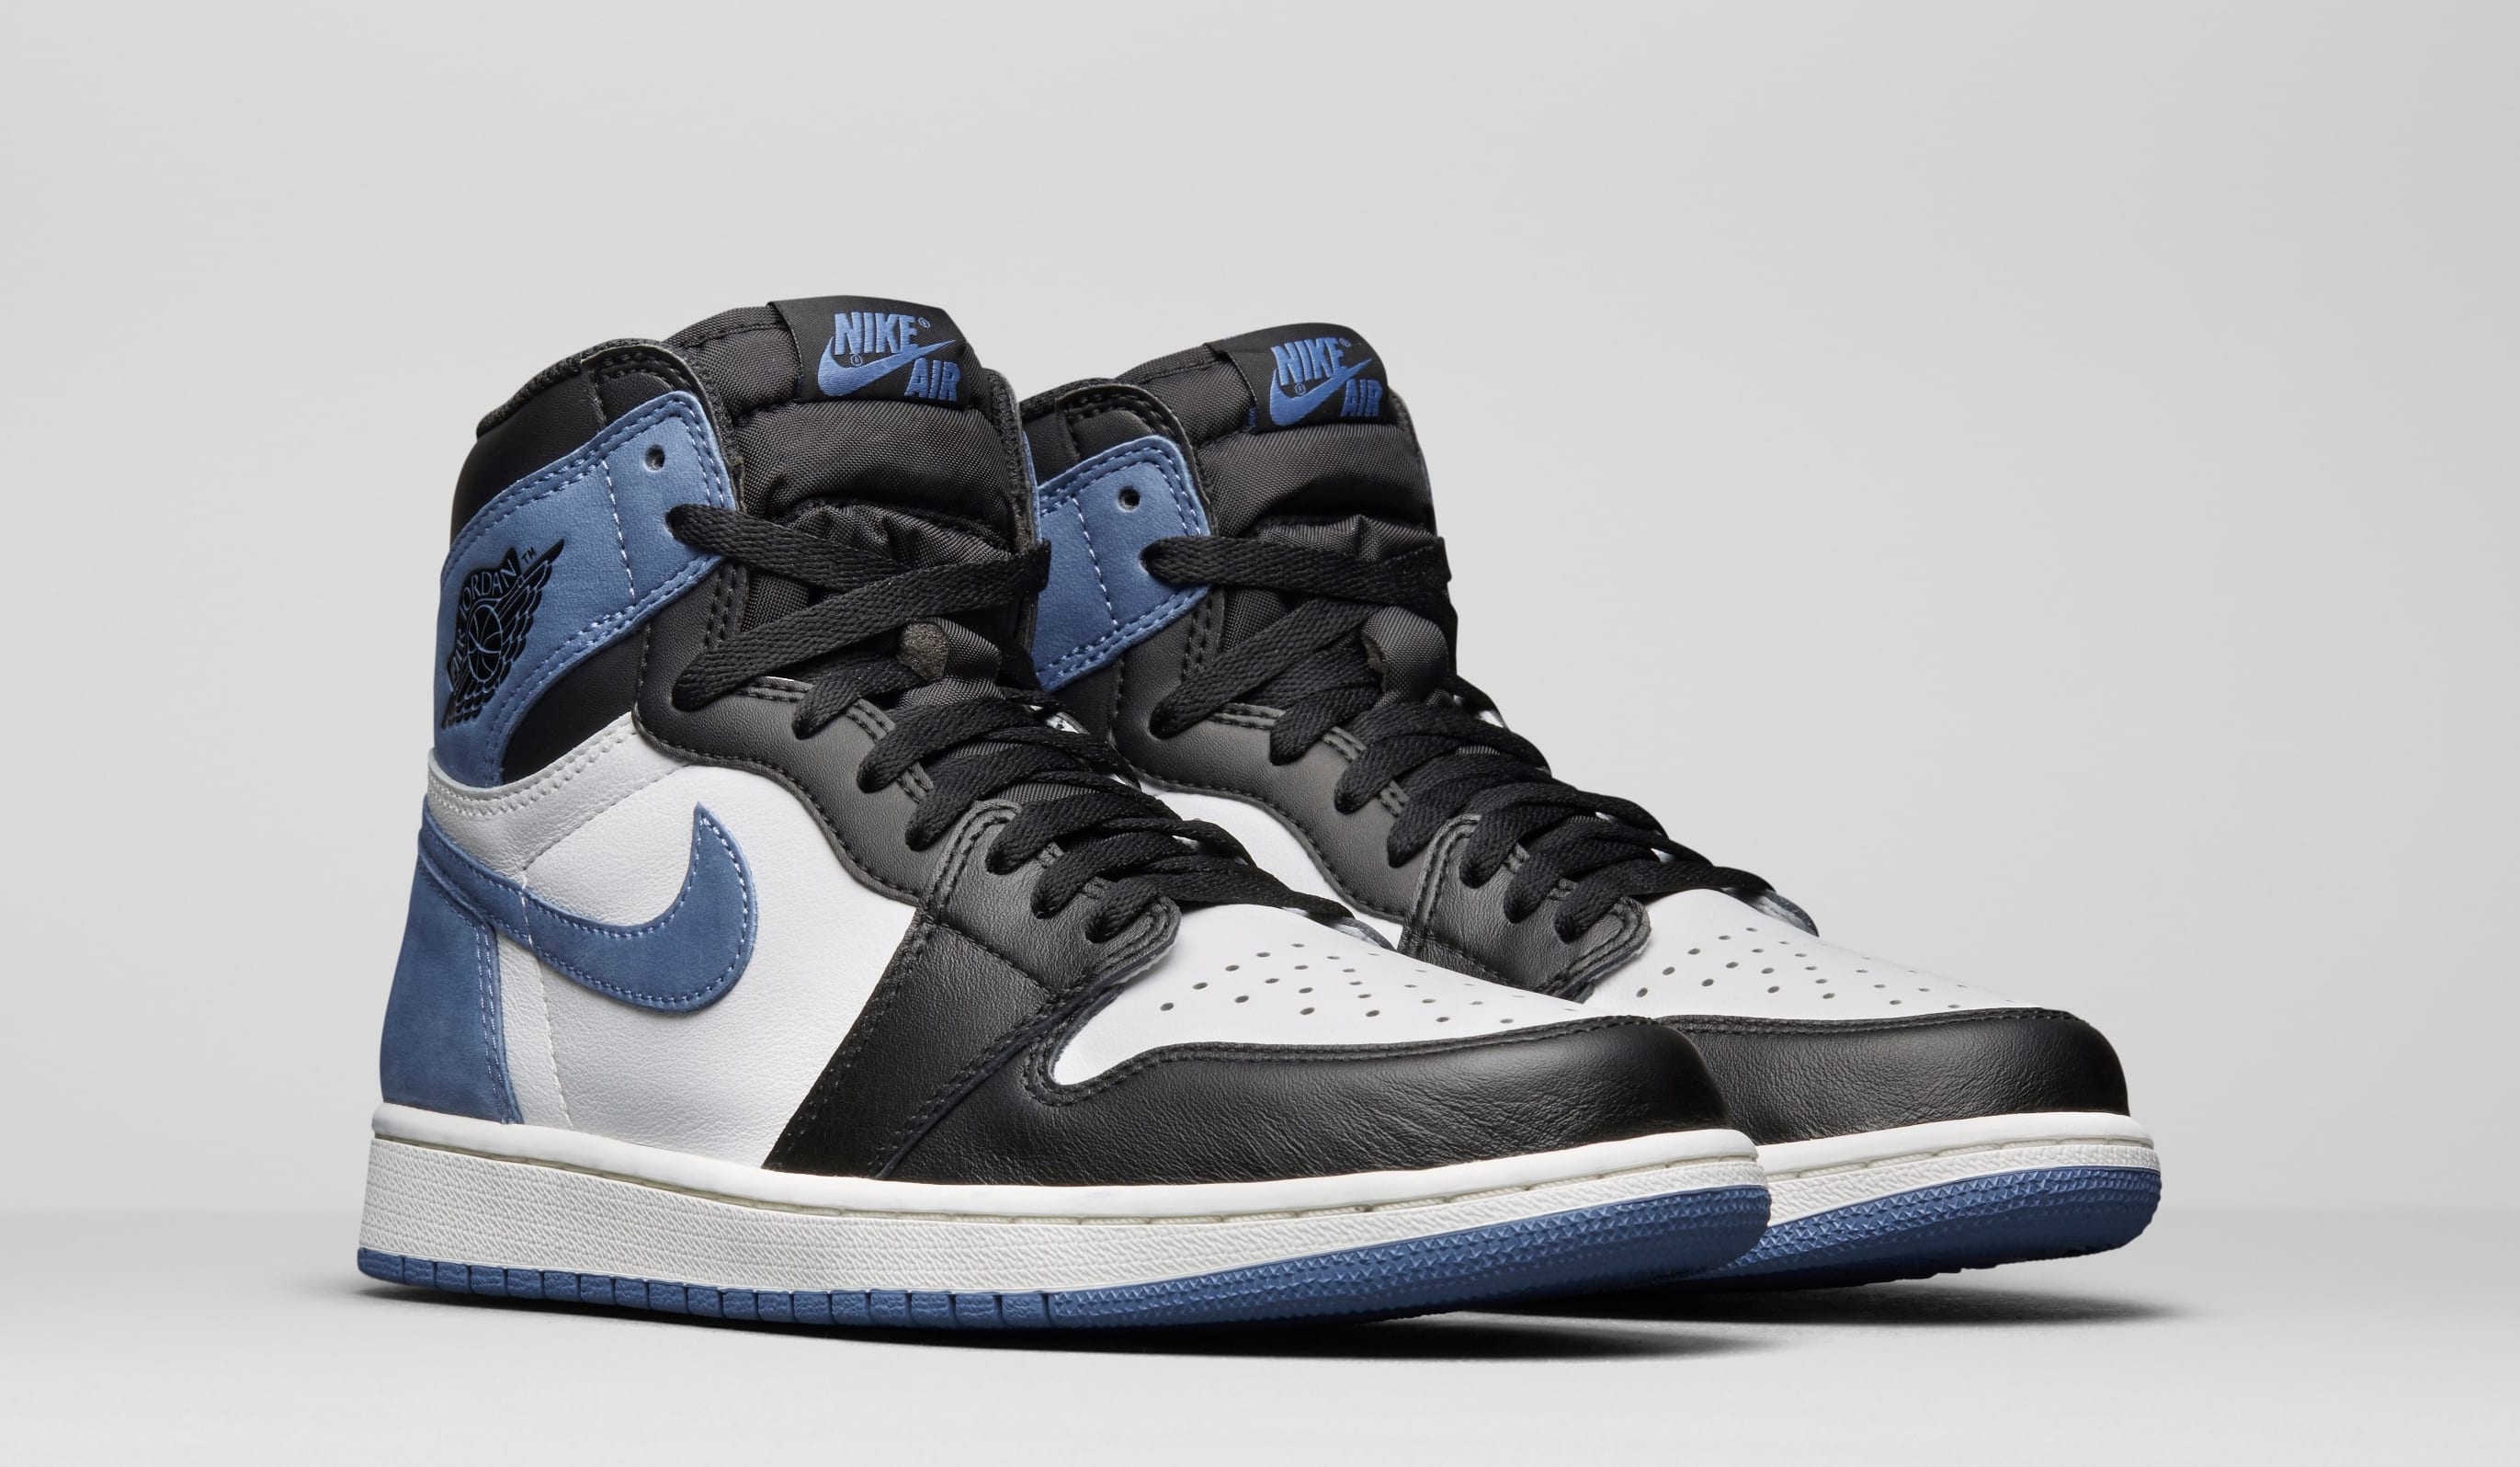 Air Jordan 1 High OG 'Blue Moon' 555088-115